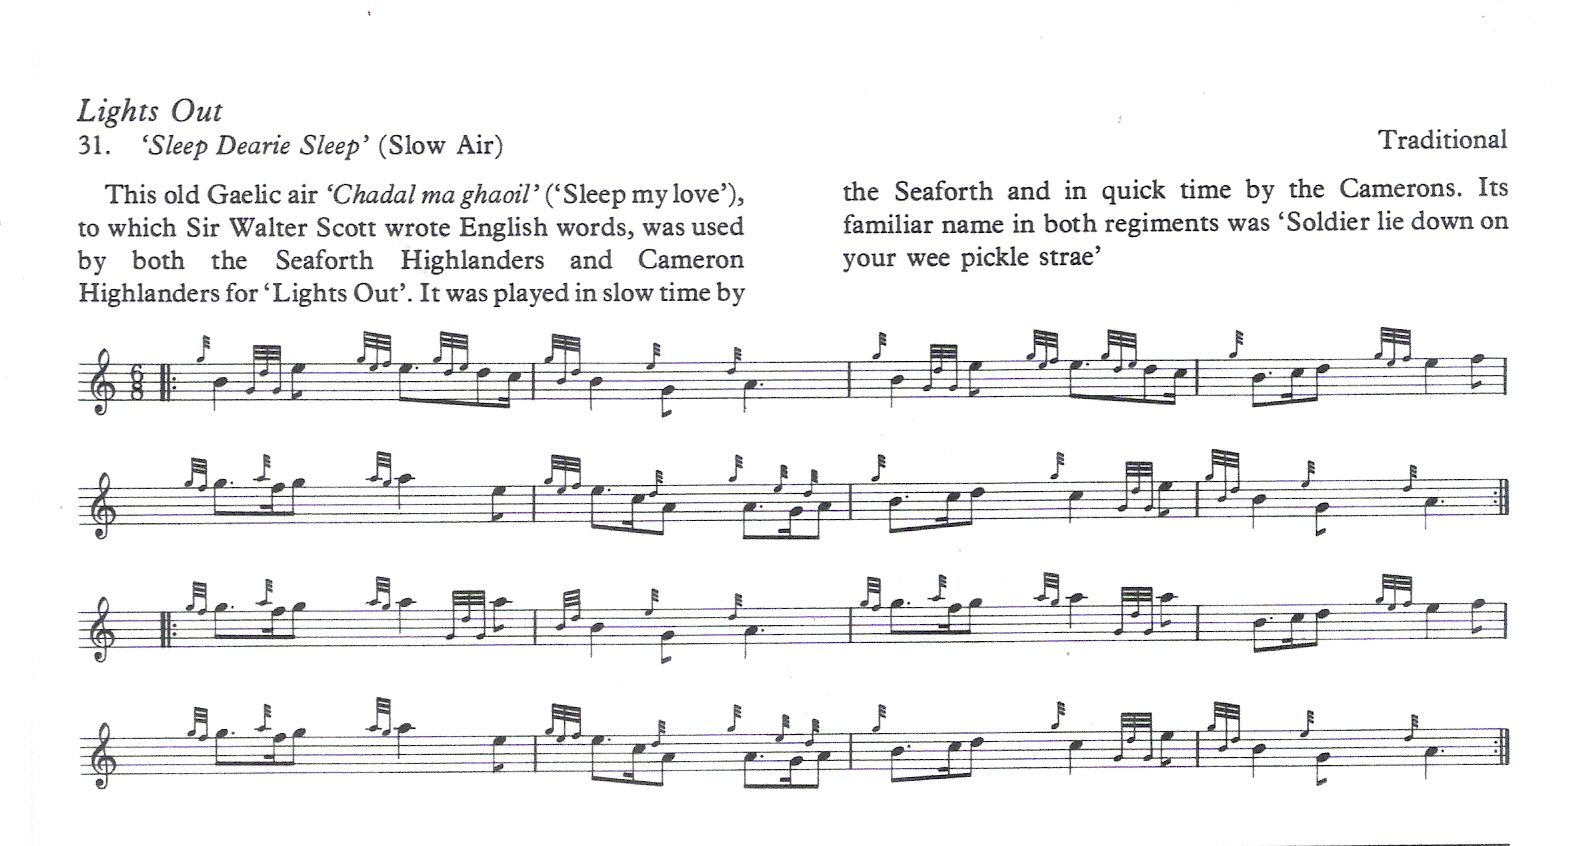 Google themes music - Braveheart Theme Song Sheet Music For Bagpipes Google Search